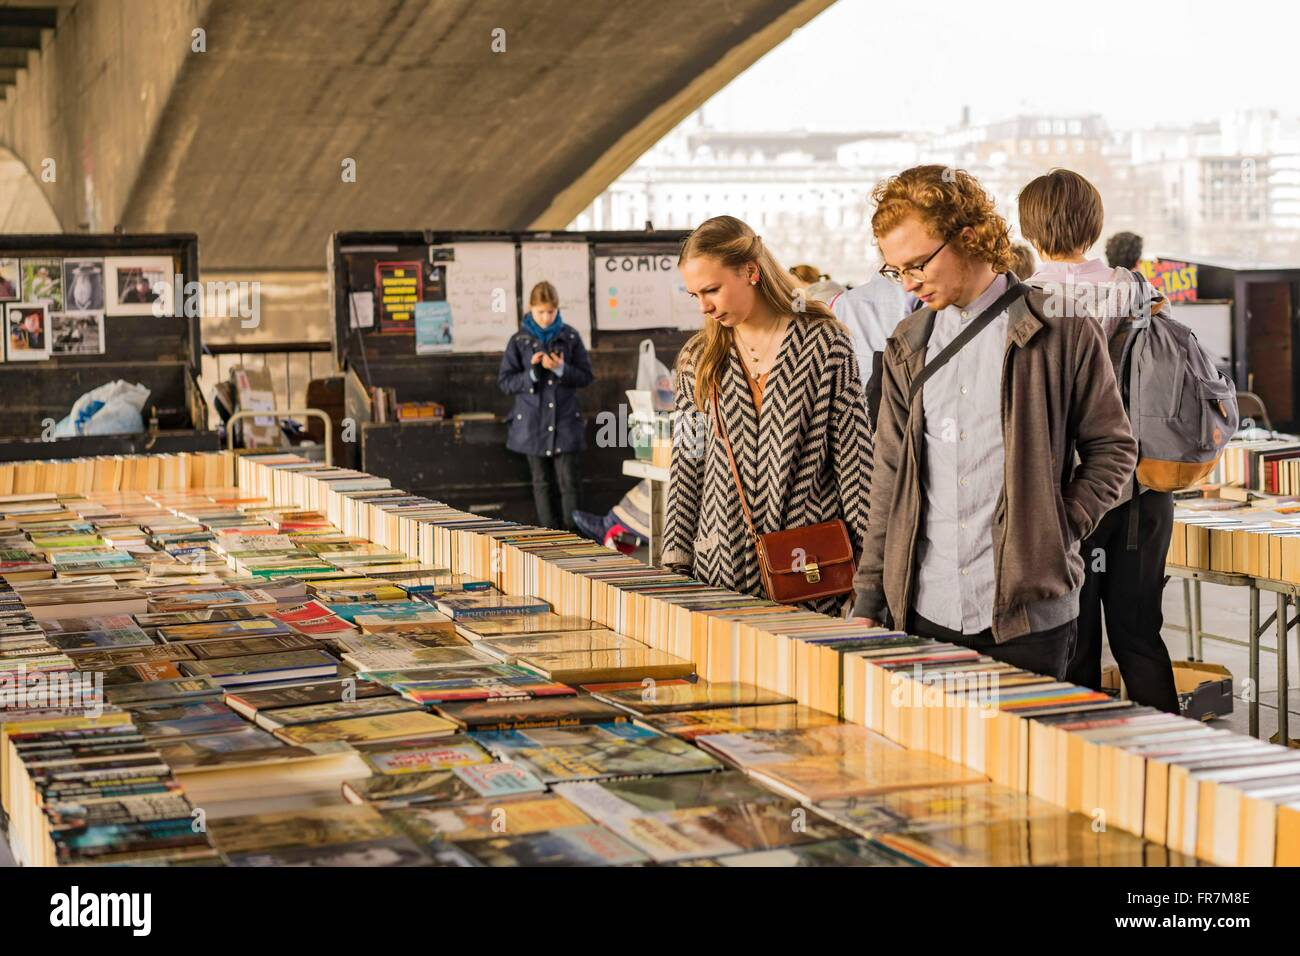 People browse a secondhand book stall under Waterloo Bridge on the South Bank, London - Stock Image